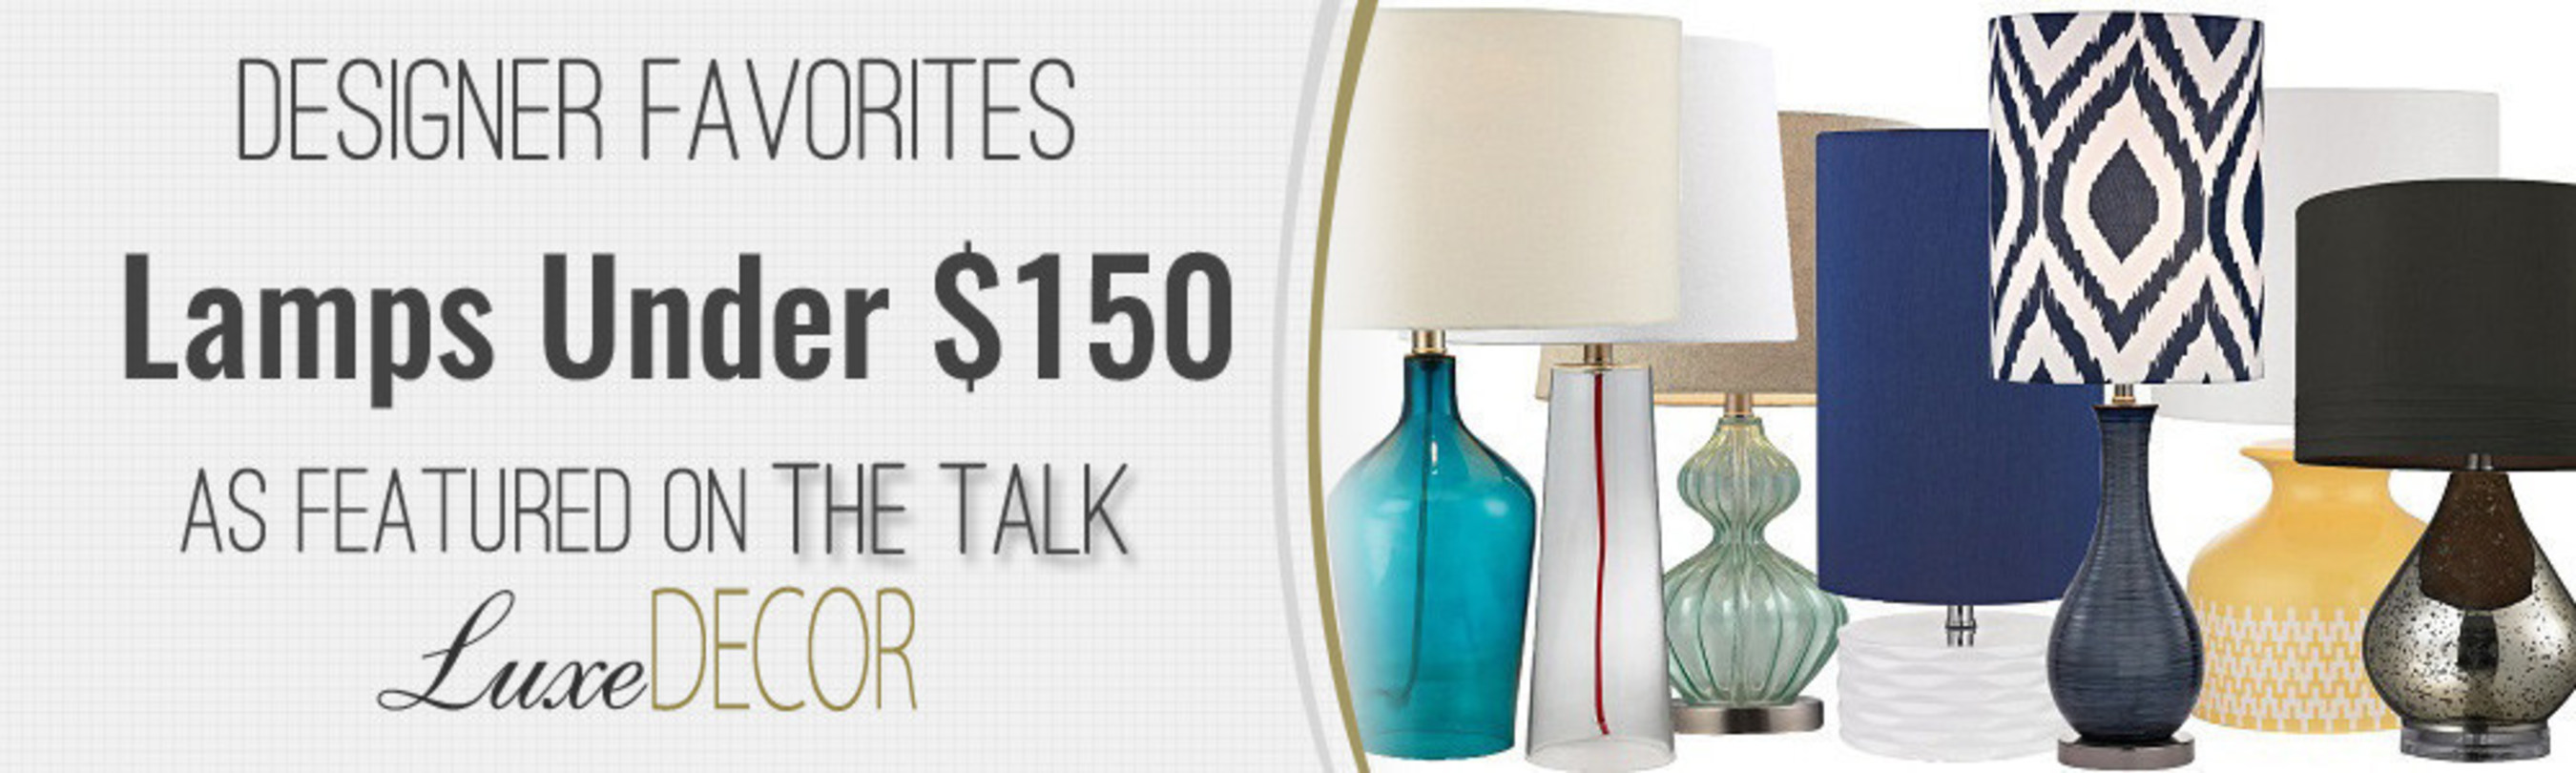 LuxeDecor to be Featured on CBS's The Talk